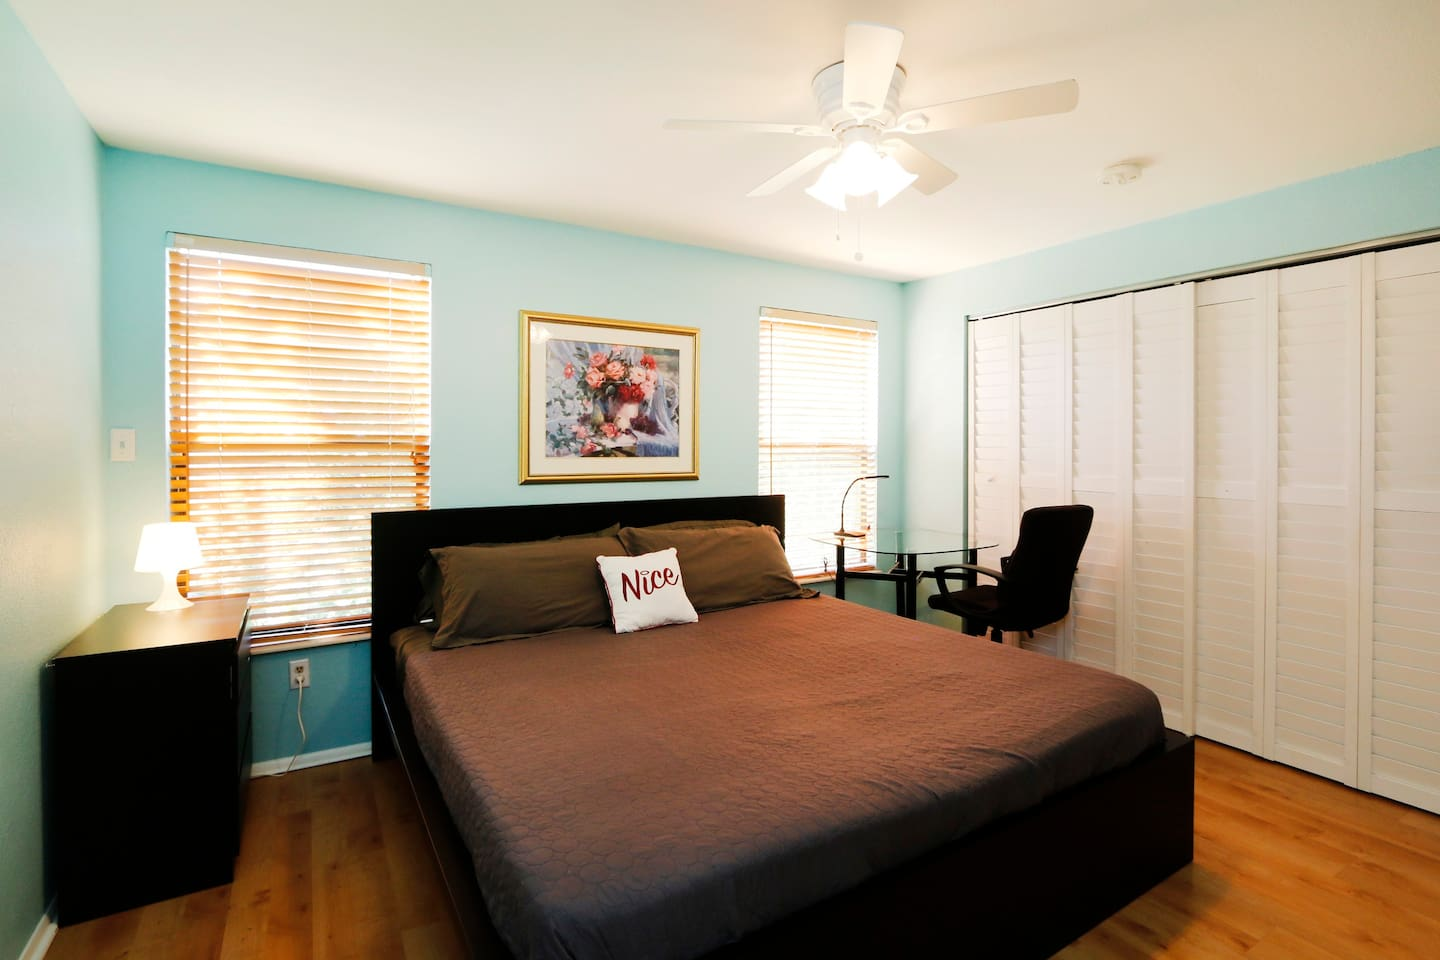 When you step into Bedroom #1 you will see a spacious master bedroom